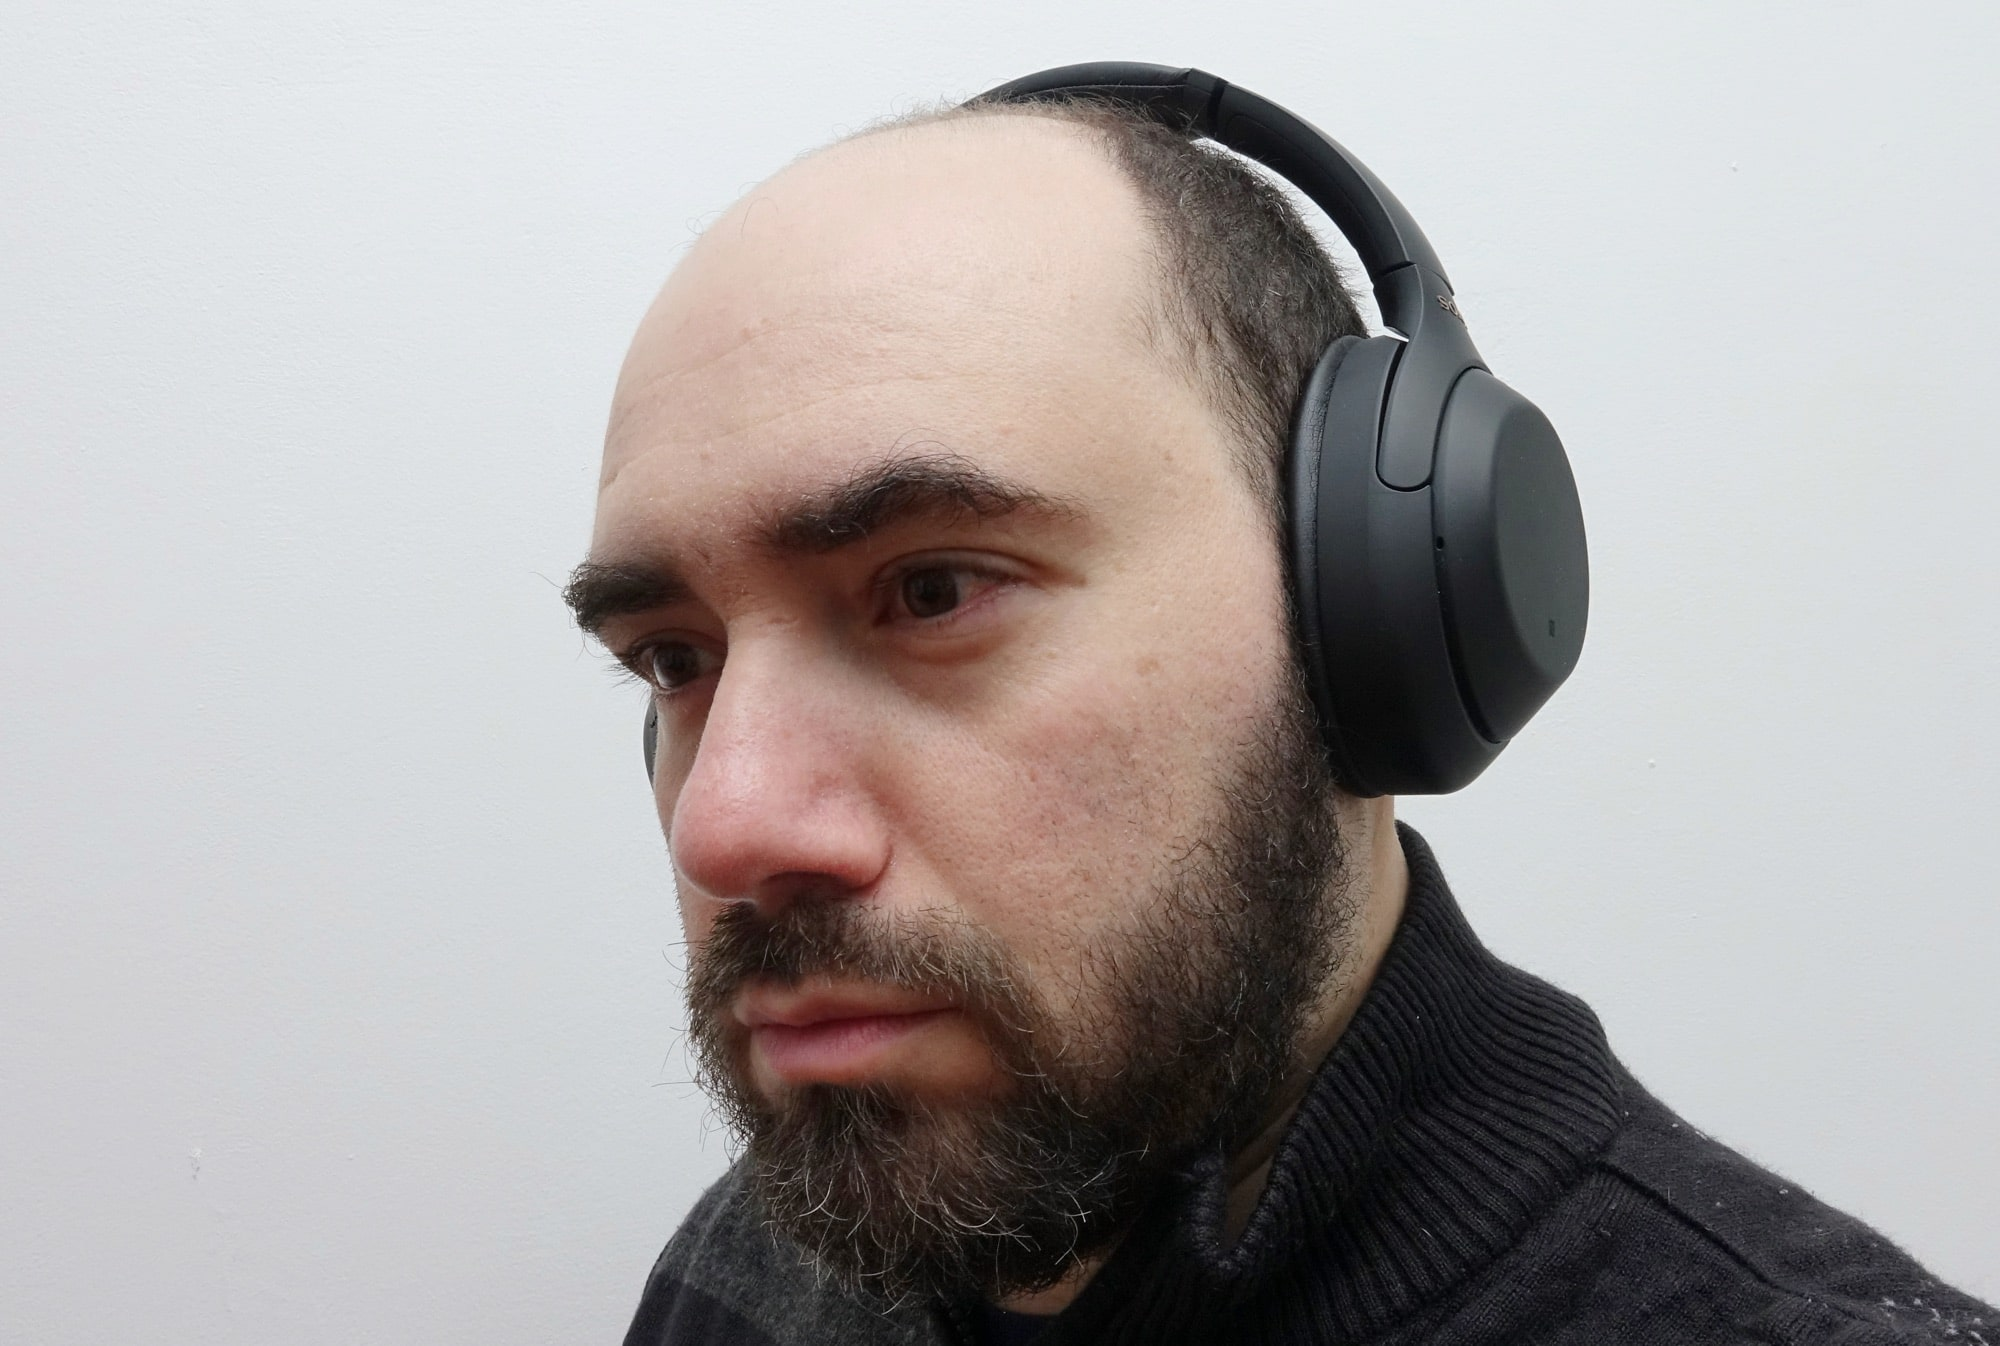 The reviewer wears the WH-1000XM4